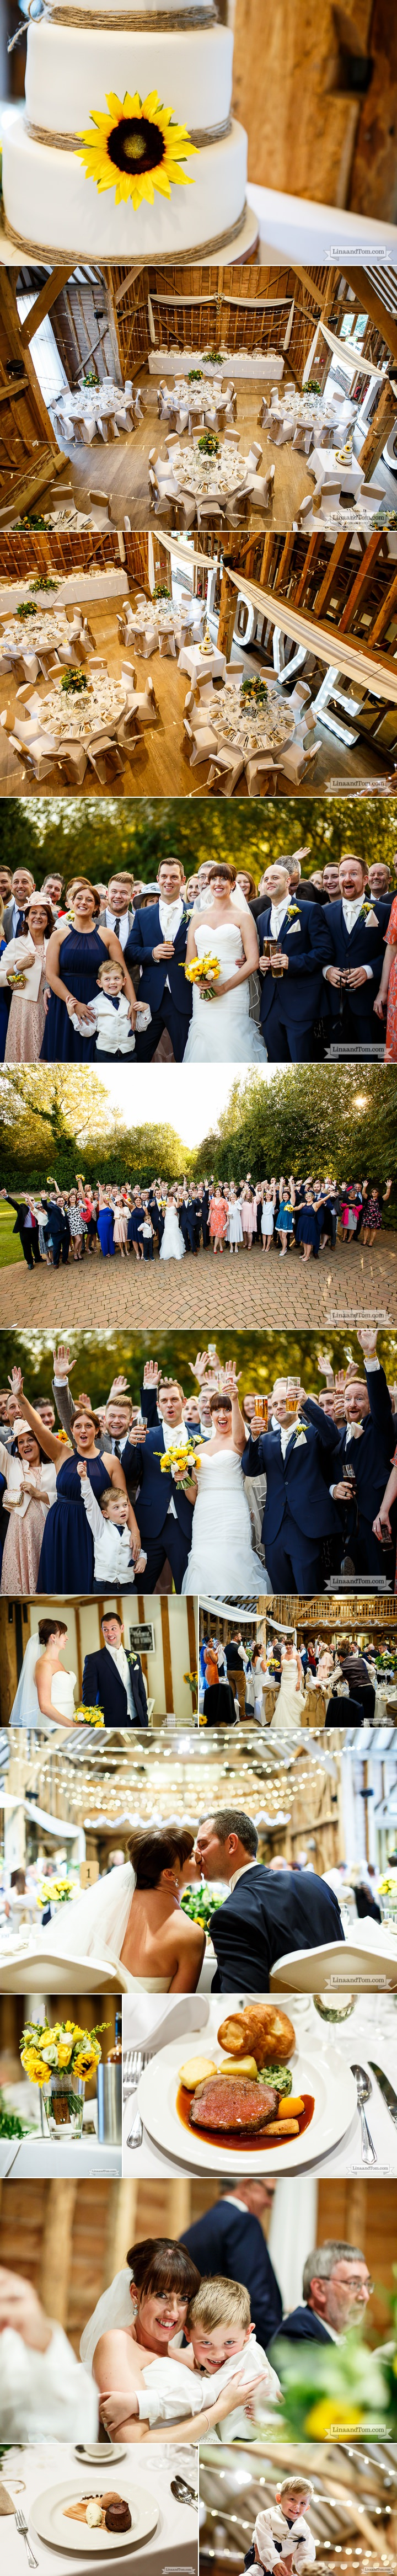 Laura Lewis Sunny Tewin Bury Farm Wedding Lina And Tom